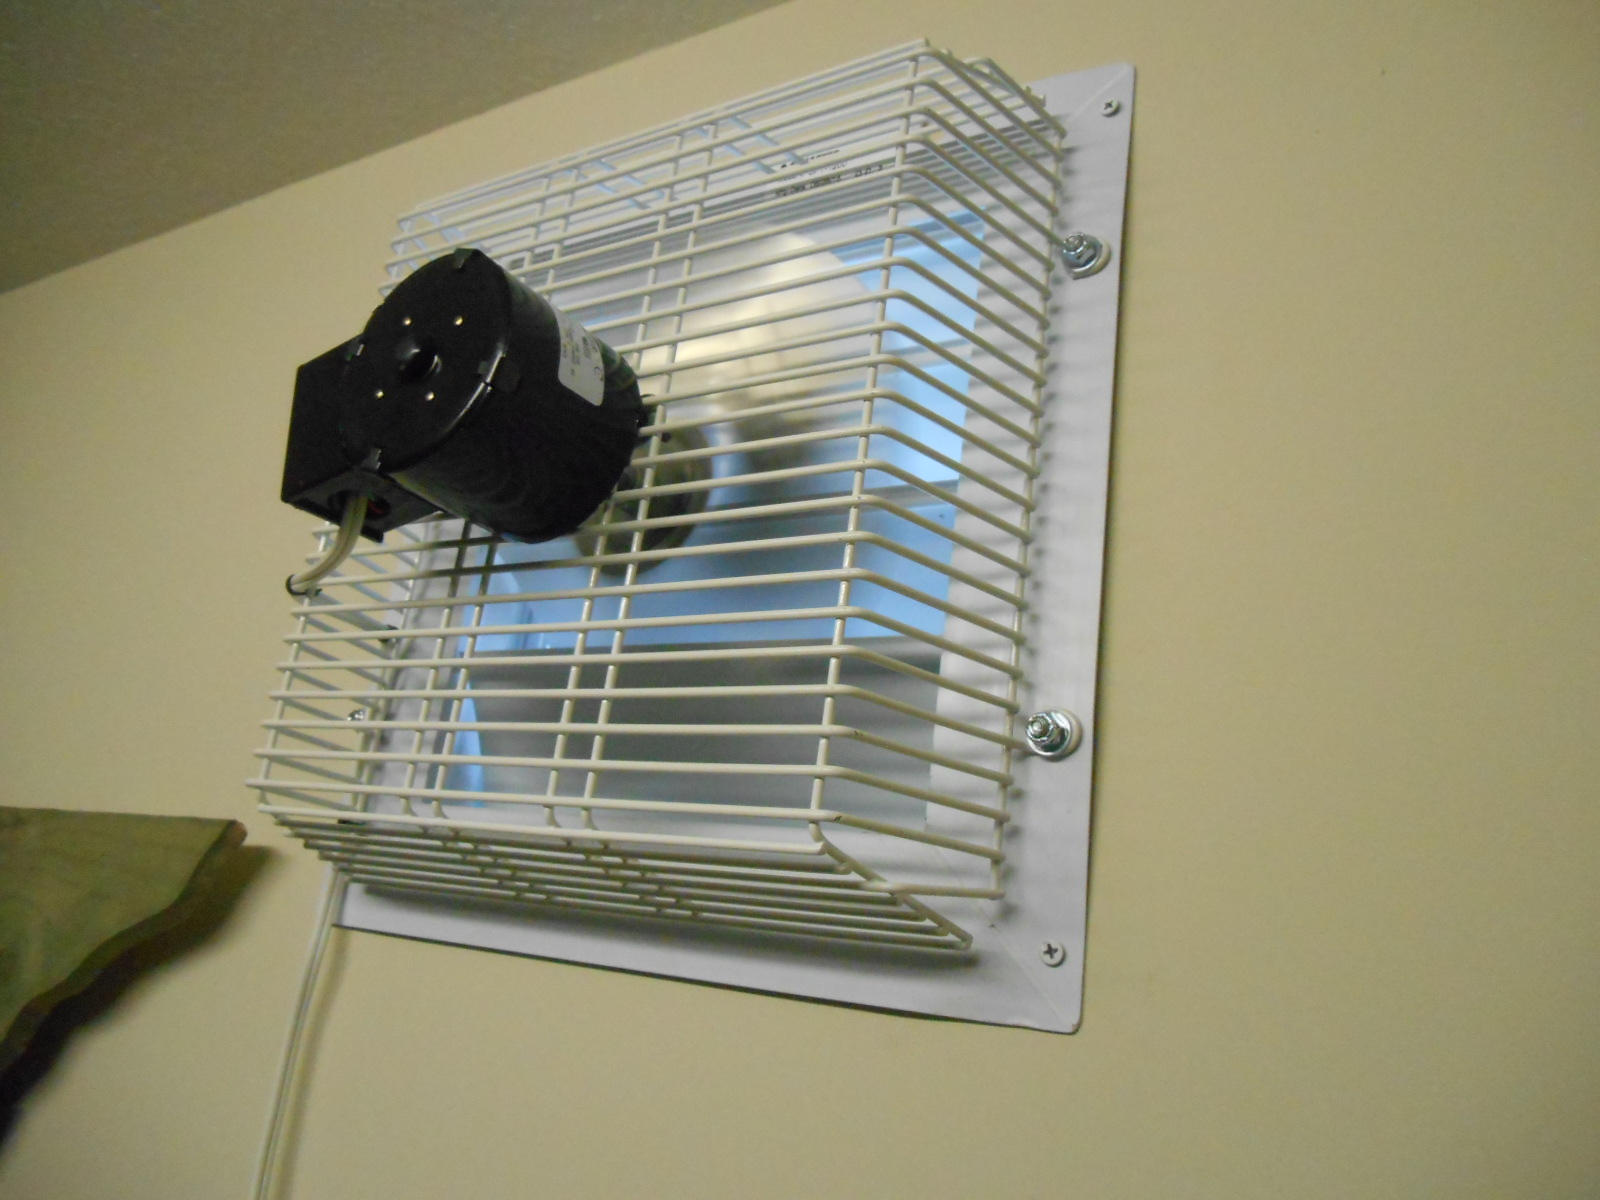 Through Wall Ventilation Fan : Gft through wall garage fan cool my